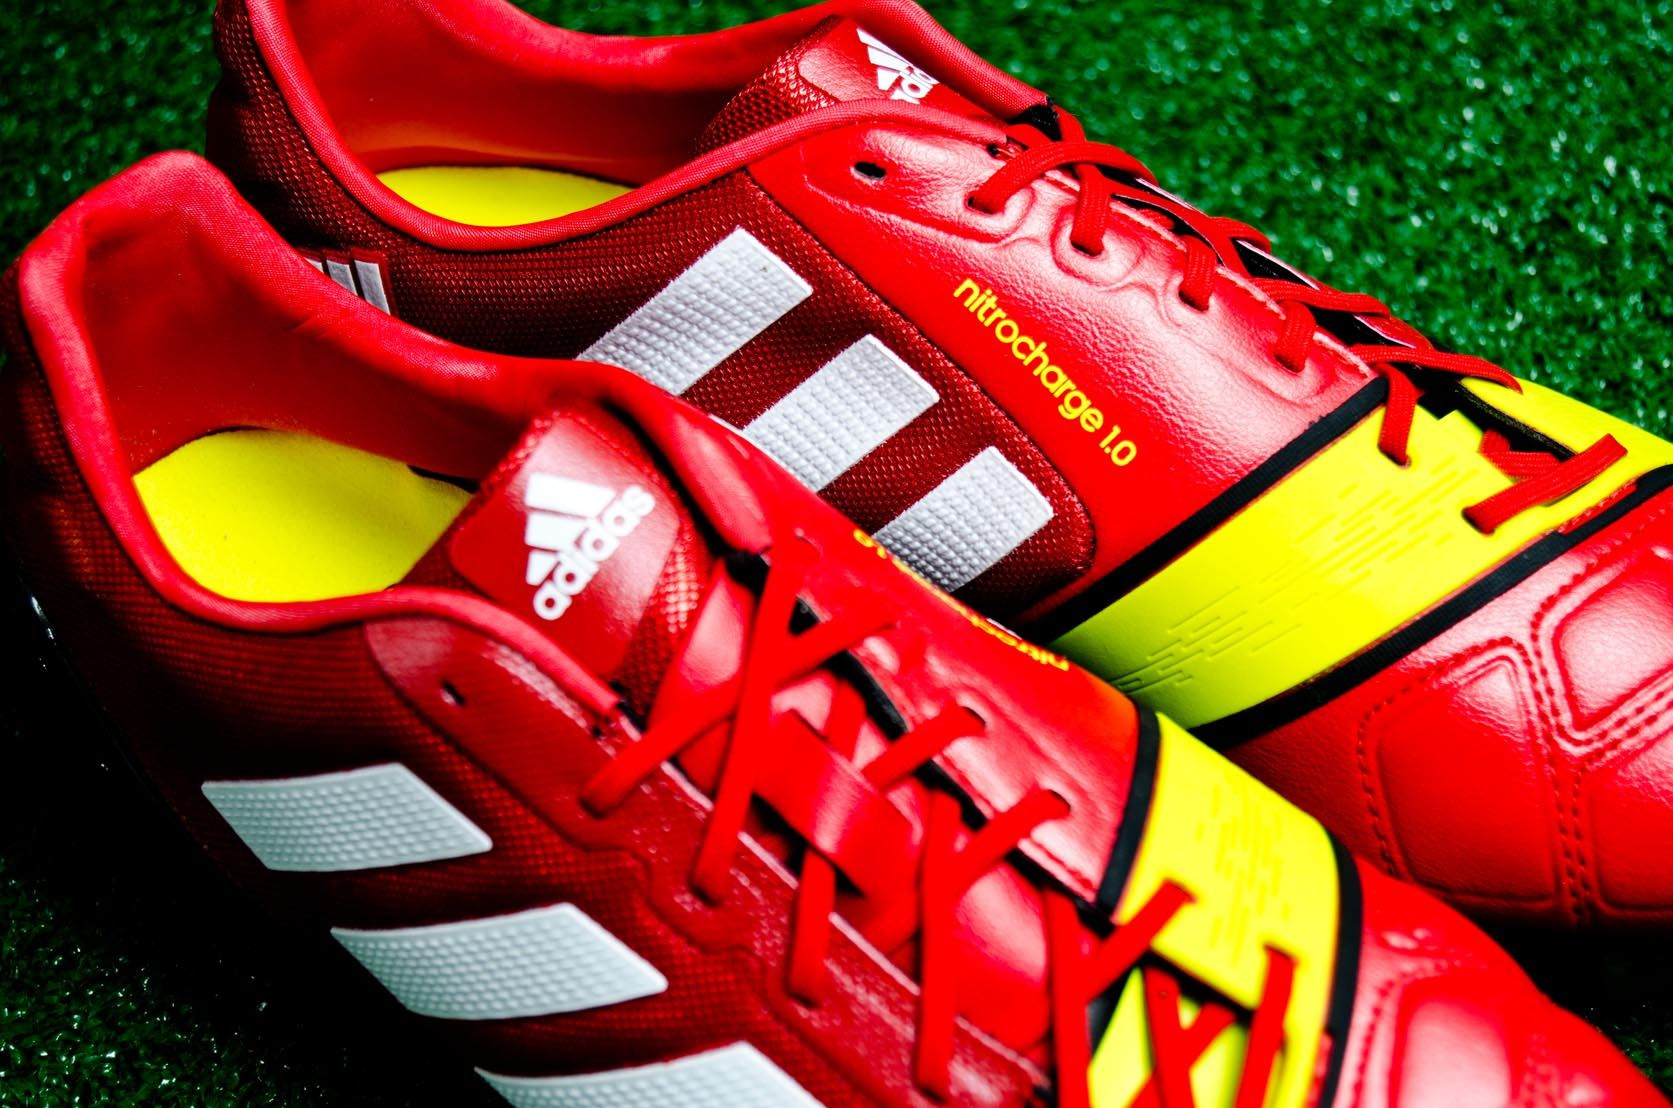 adidas nitrocharge 1 0 trx fg soccer cleats red. Black Bedroom Furniture Sets. Home Design Ideas